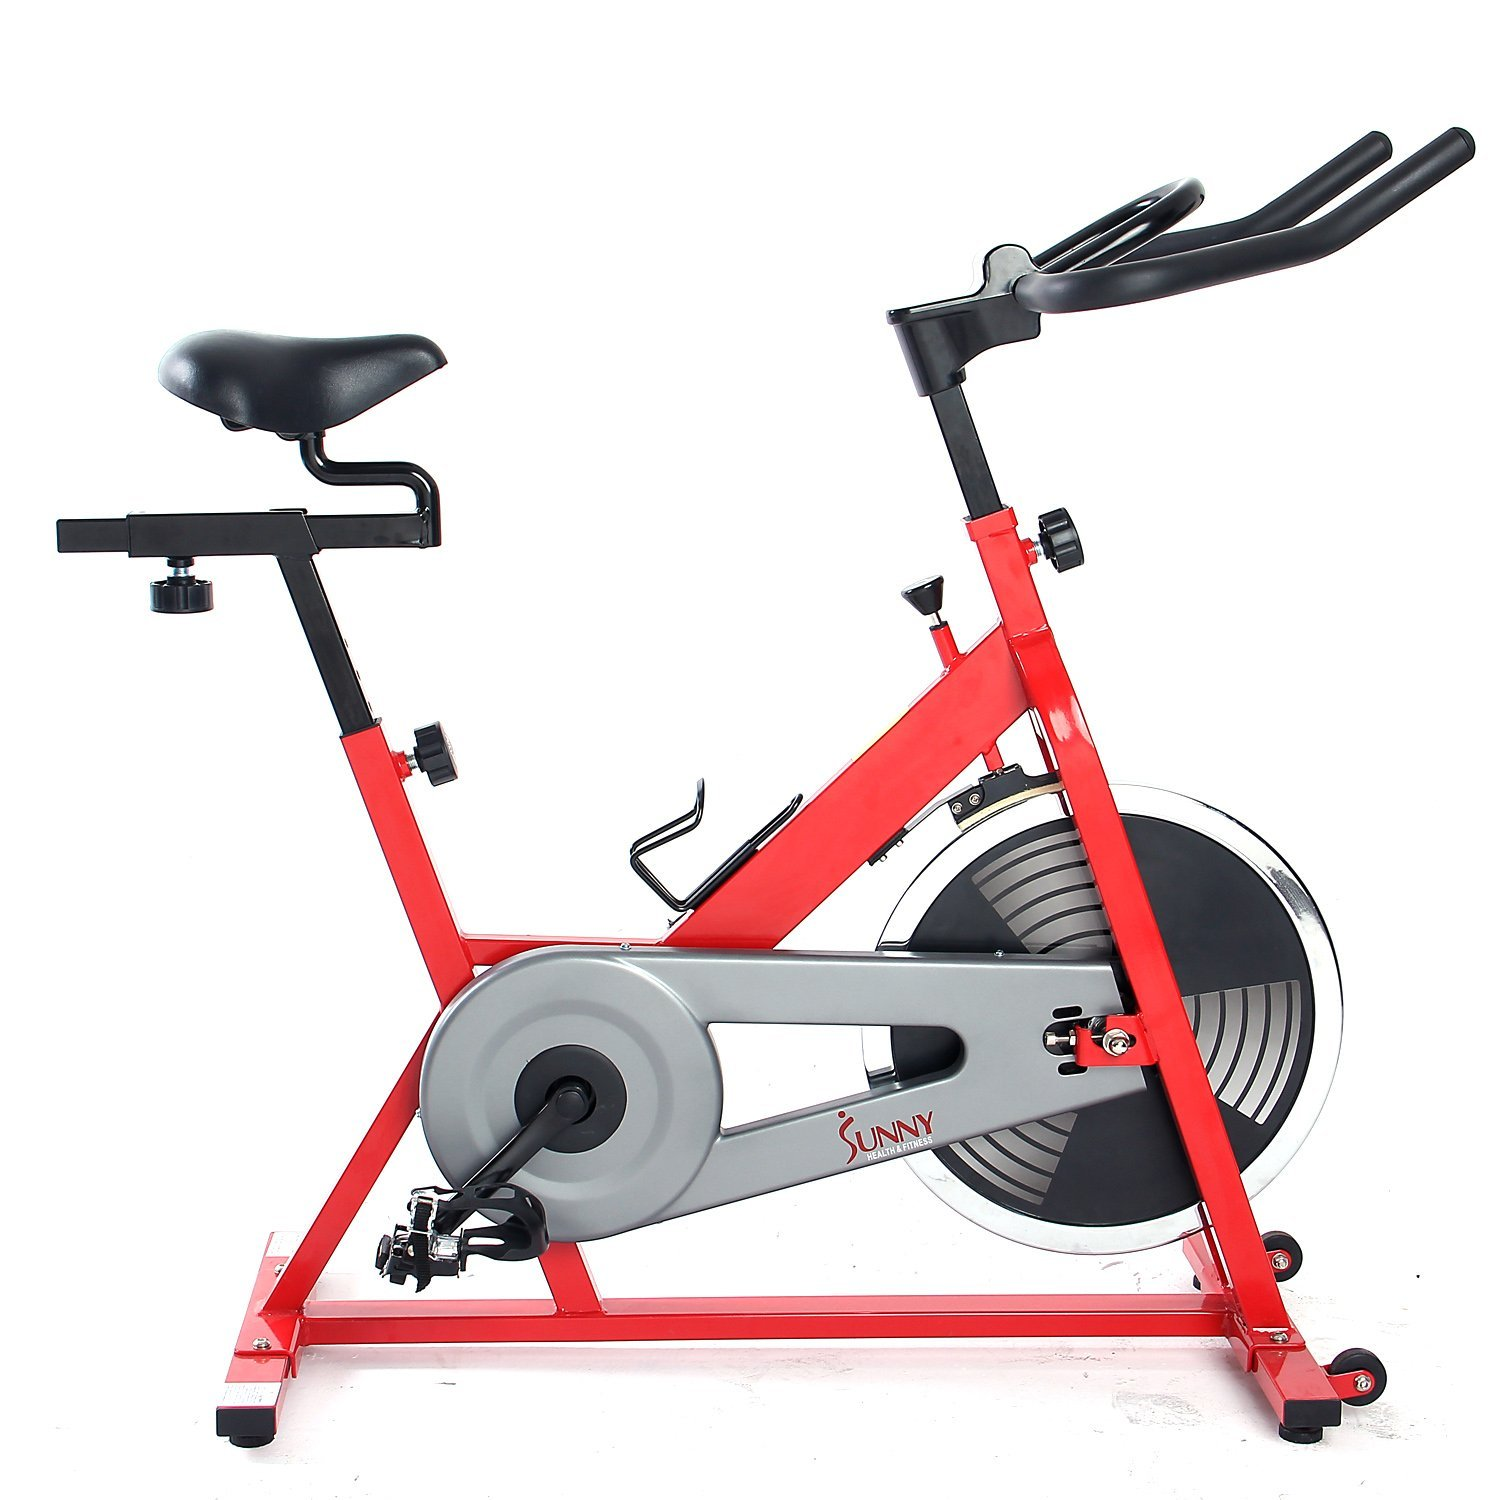 Sunny SF B1001 indoor cycling bike Review